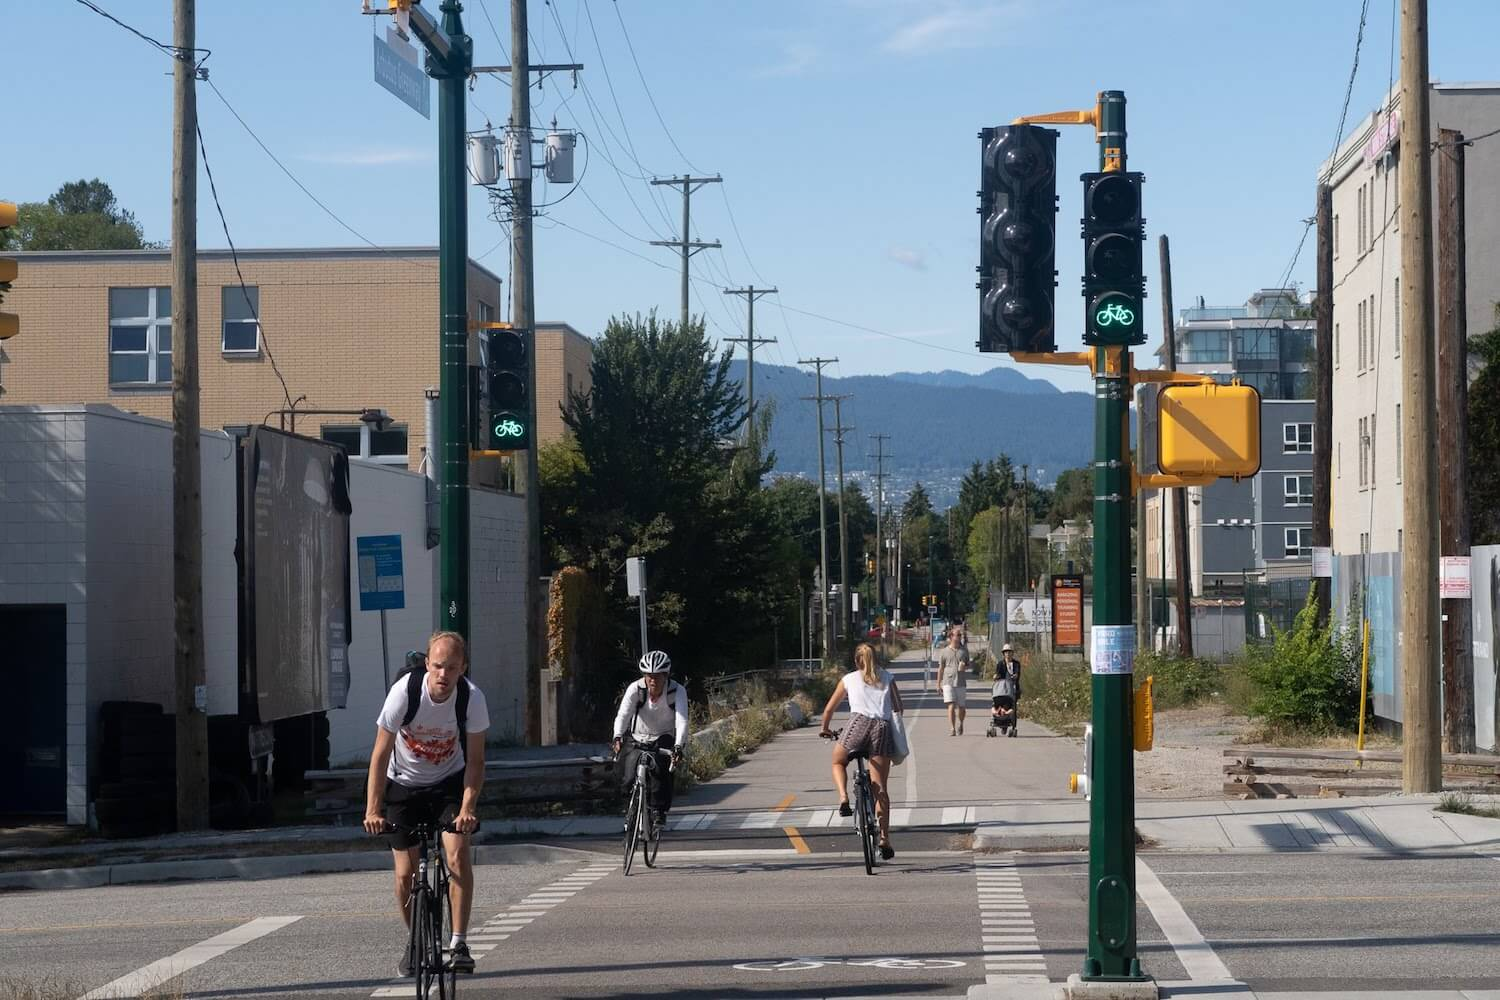 Arbutus Greenway bike lane with bike-specific traffic signals